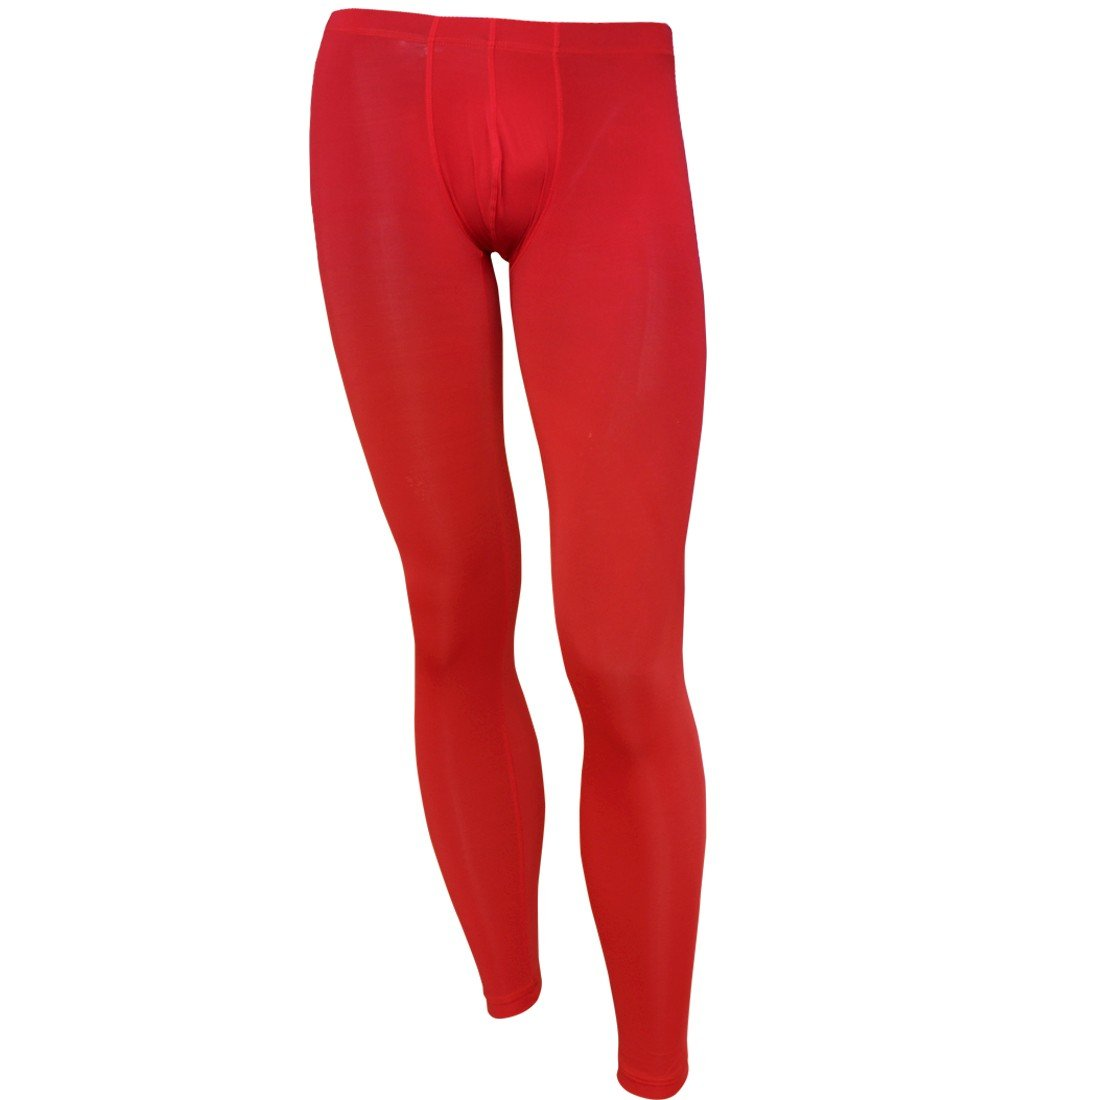 62a1074f173 iiniim Mens Smooth Low Rise Bulge Pouch Trousers Thermal Underwear Tights  Fitness Sleepwear  Amazon.co.uk  Clothing